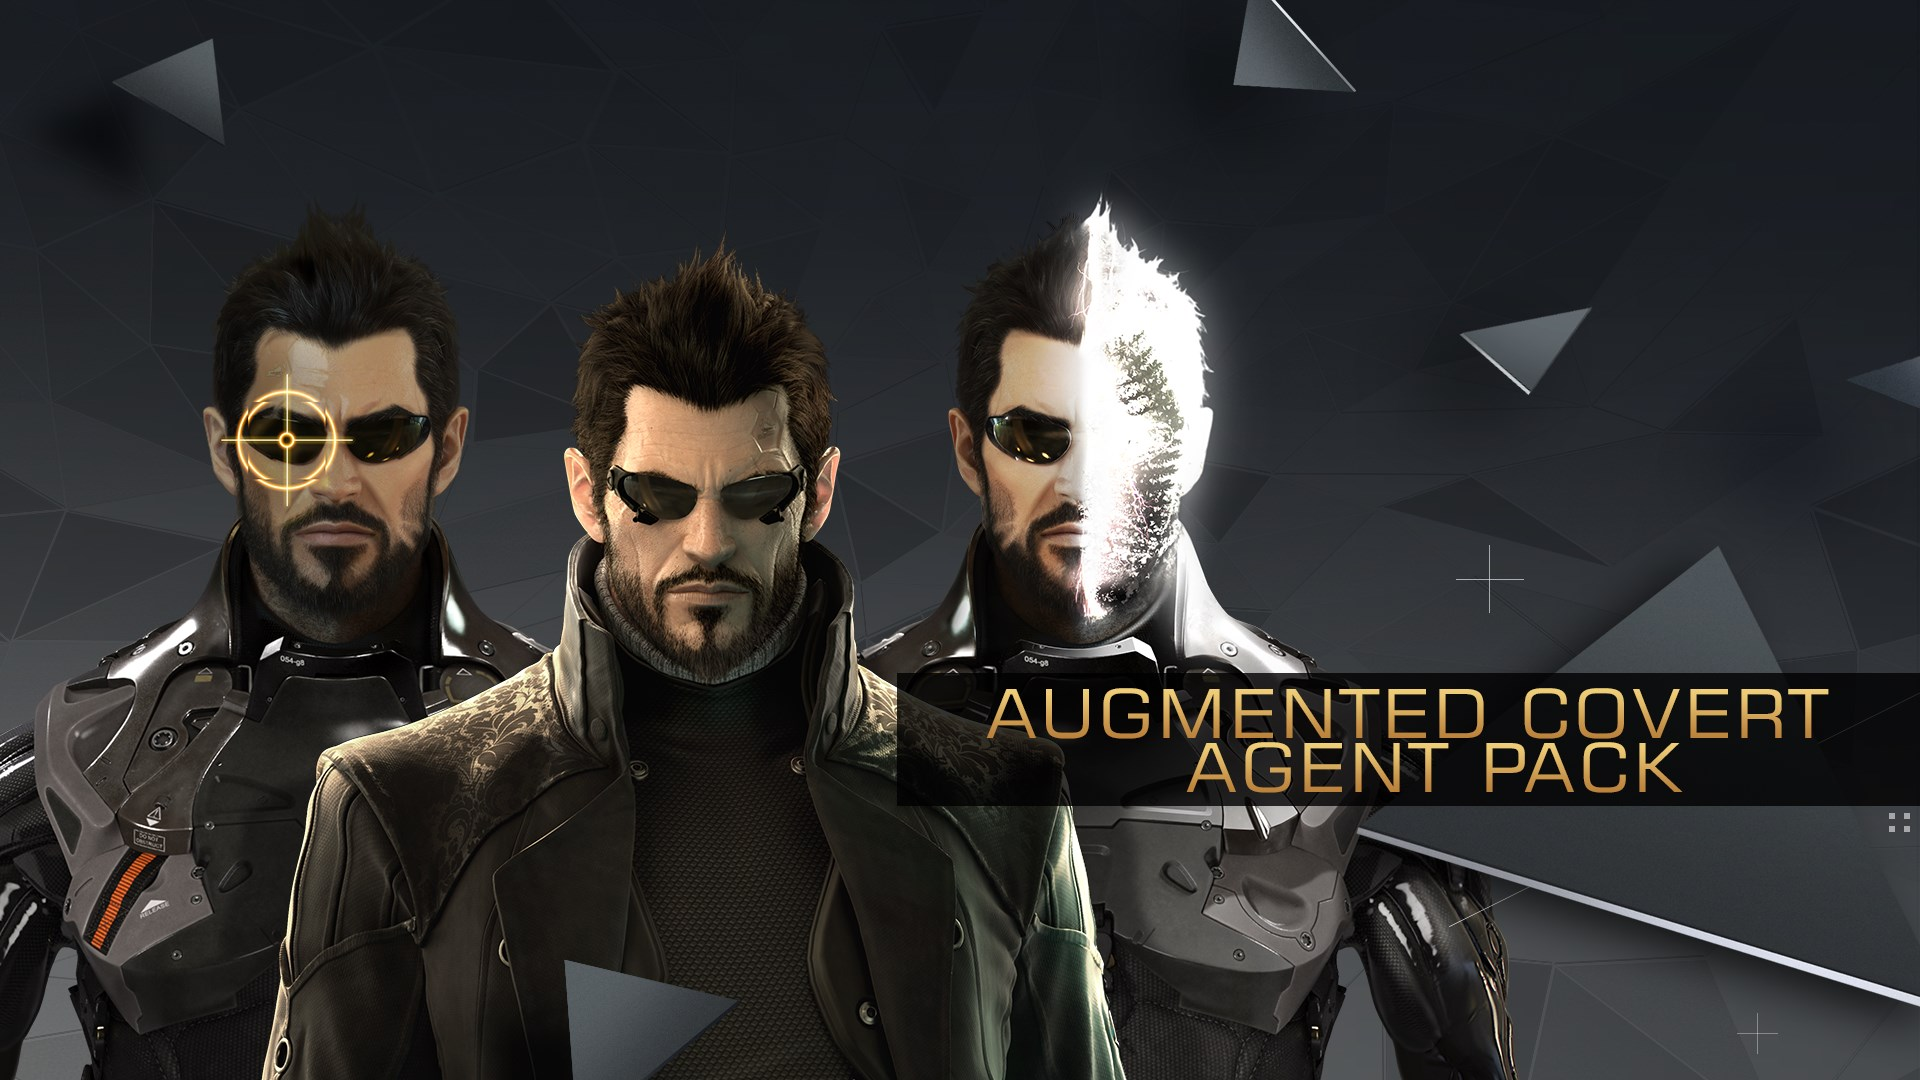 Deus Ex: Mankind Divided - Augmented Covert Agent Pack